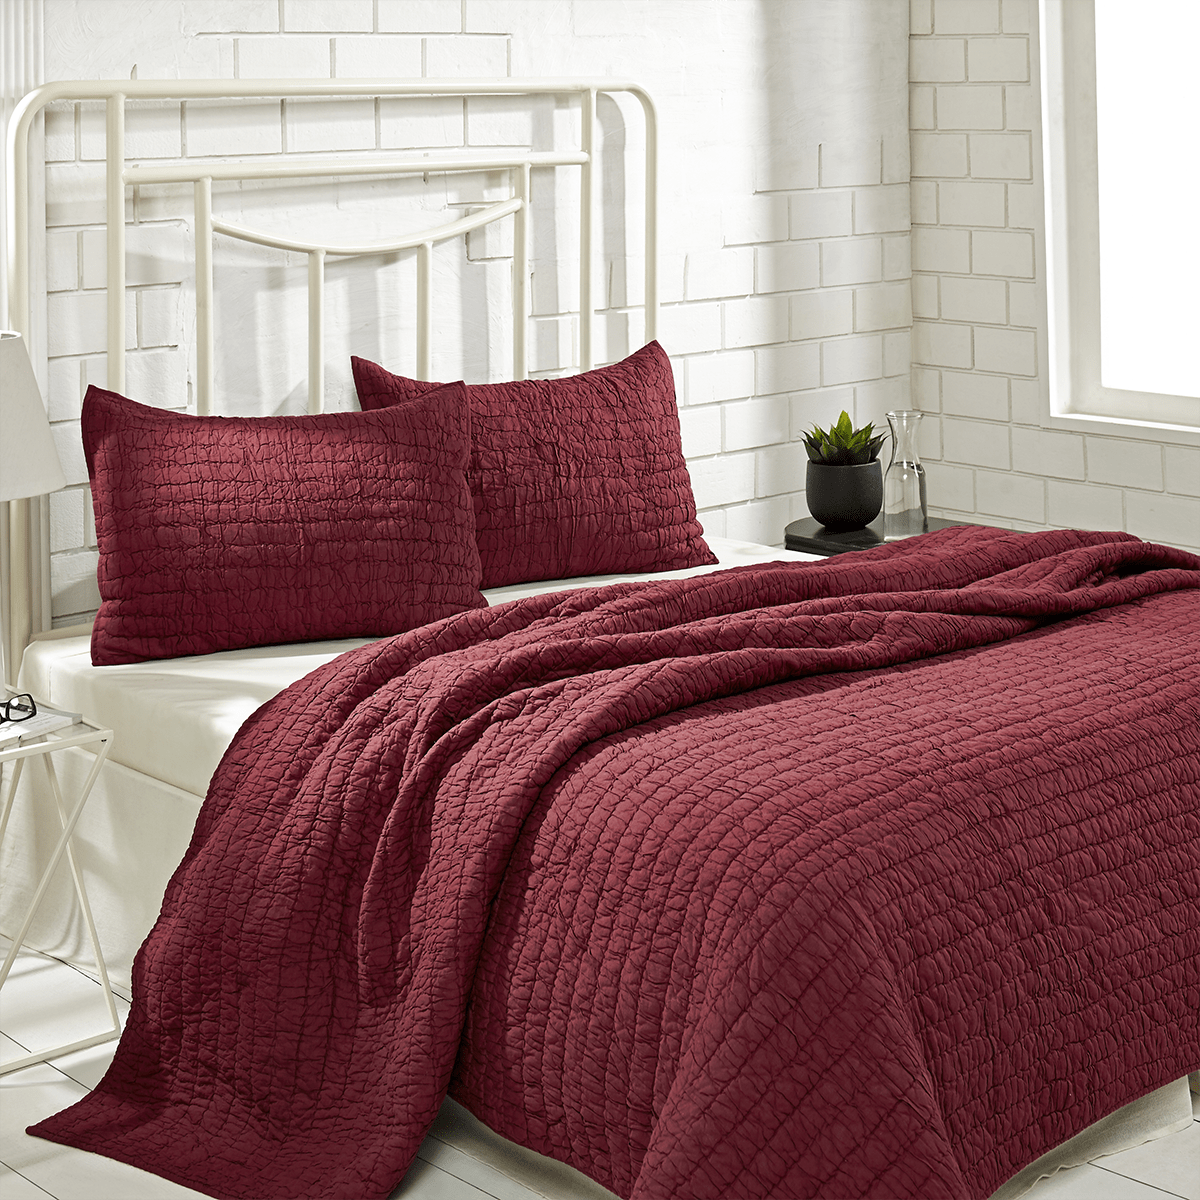 Rochelle Ruby Twin Set with Quilt -1 Sham